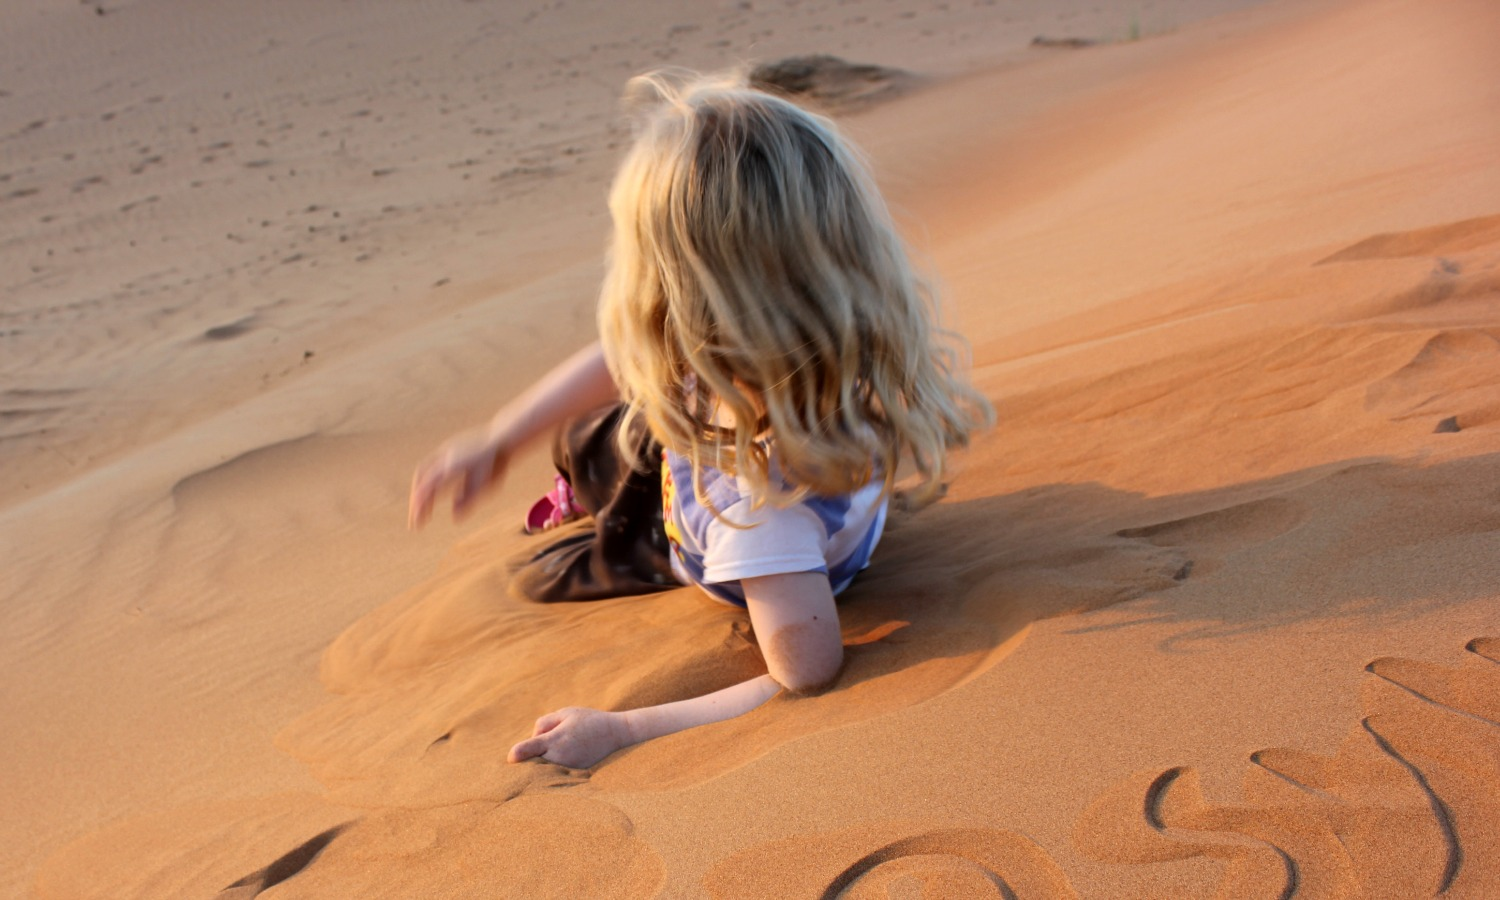 My daughter slides gently down one of the deep orange dunes in Wahiba Sands, Oman at sunset - our stay in Wahiba Sands